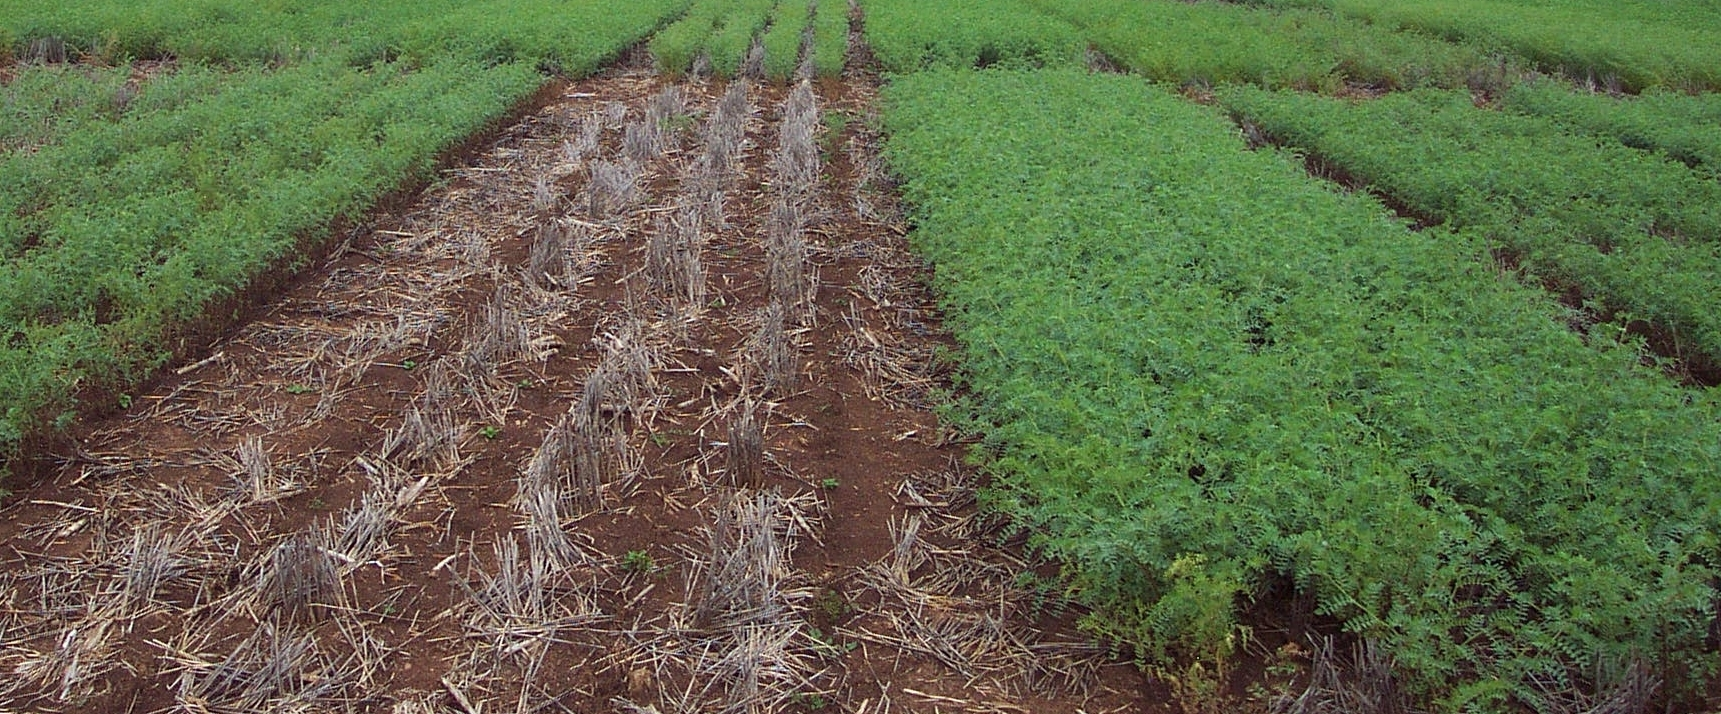 A trial plot showing the difference in results between the new and old varieties of chickpea